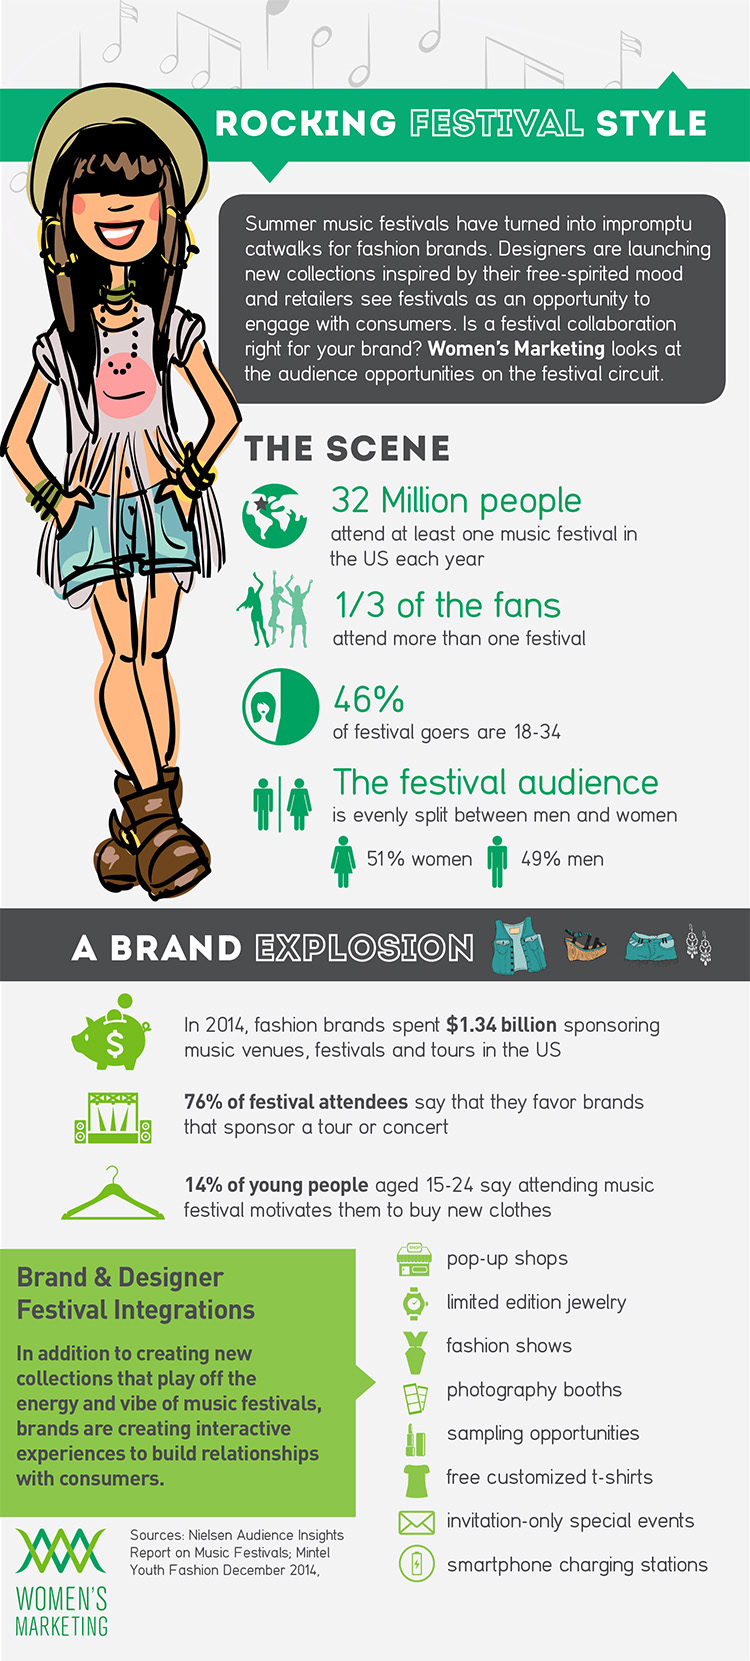 Statistics-and-demographics-about-summer-music-festivals-and-designer-fashion-brands